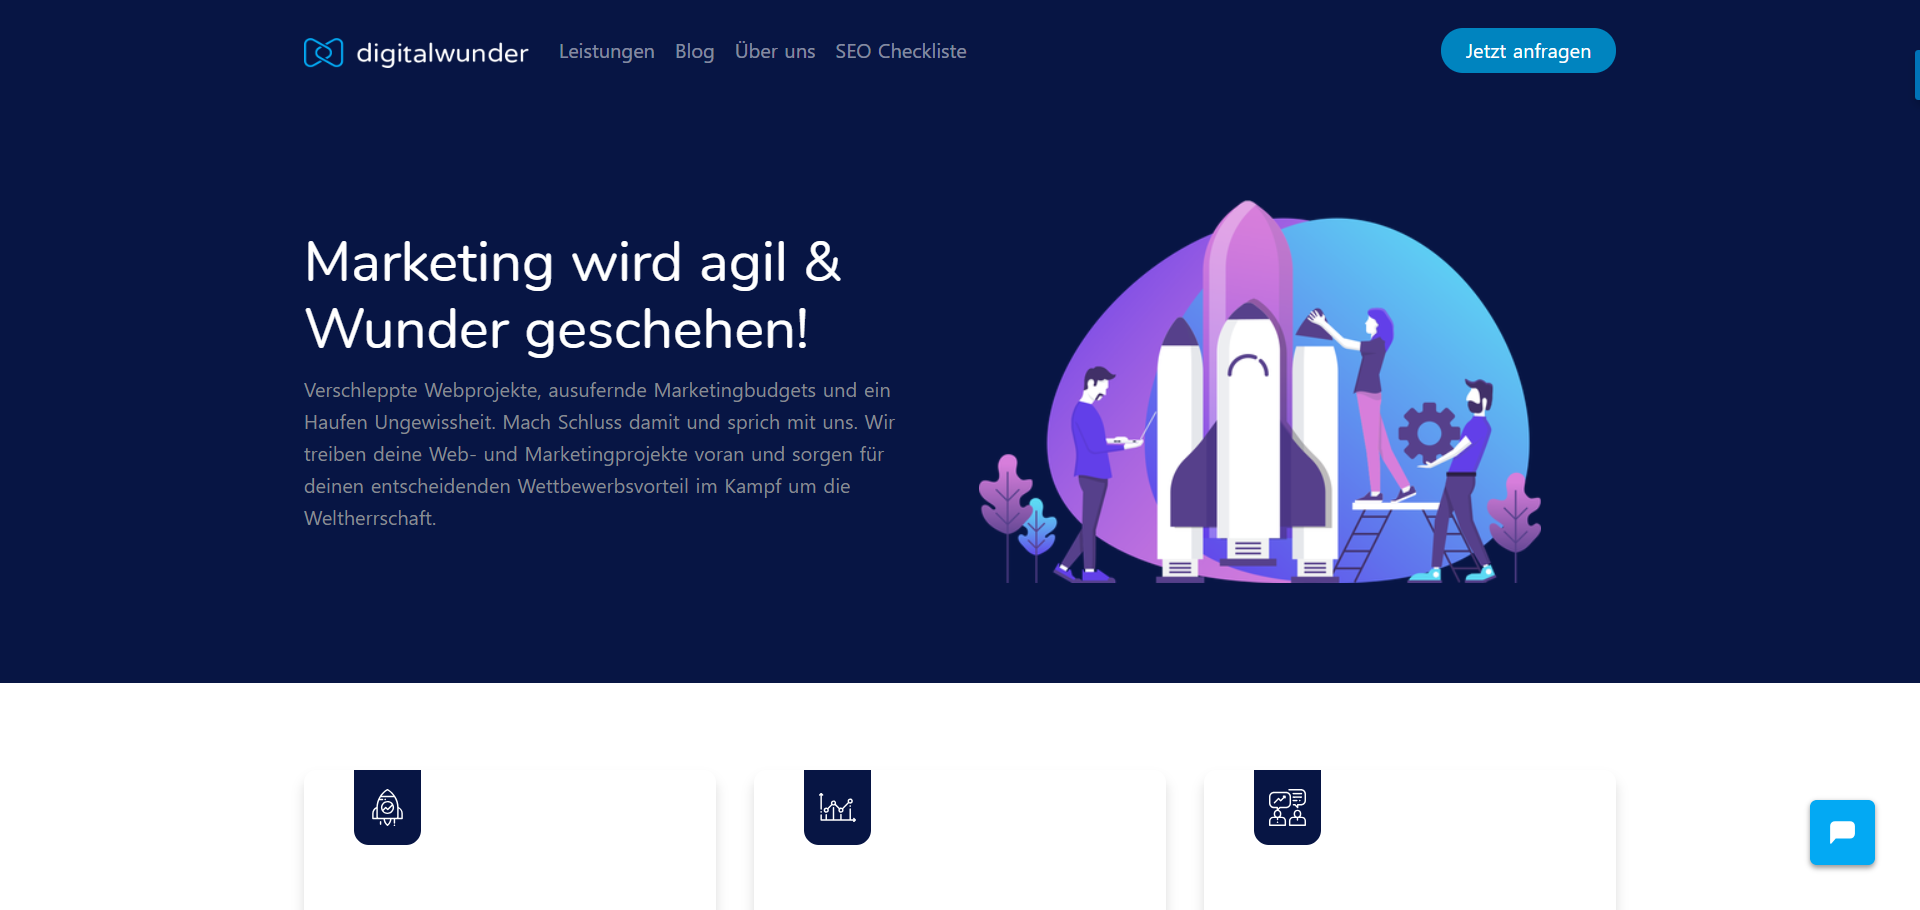 digitalwunder-io-fold-marketing-agile